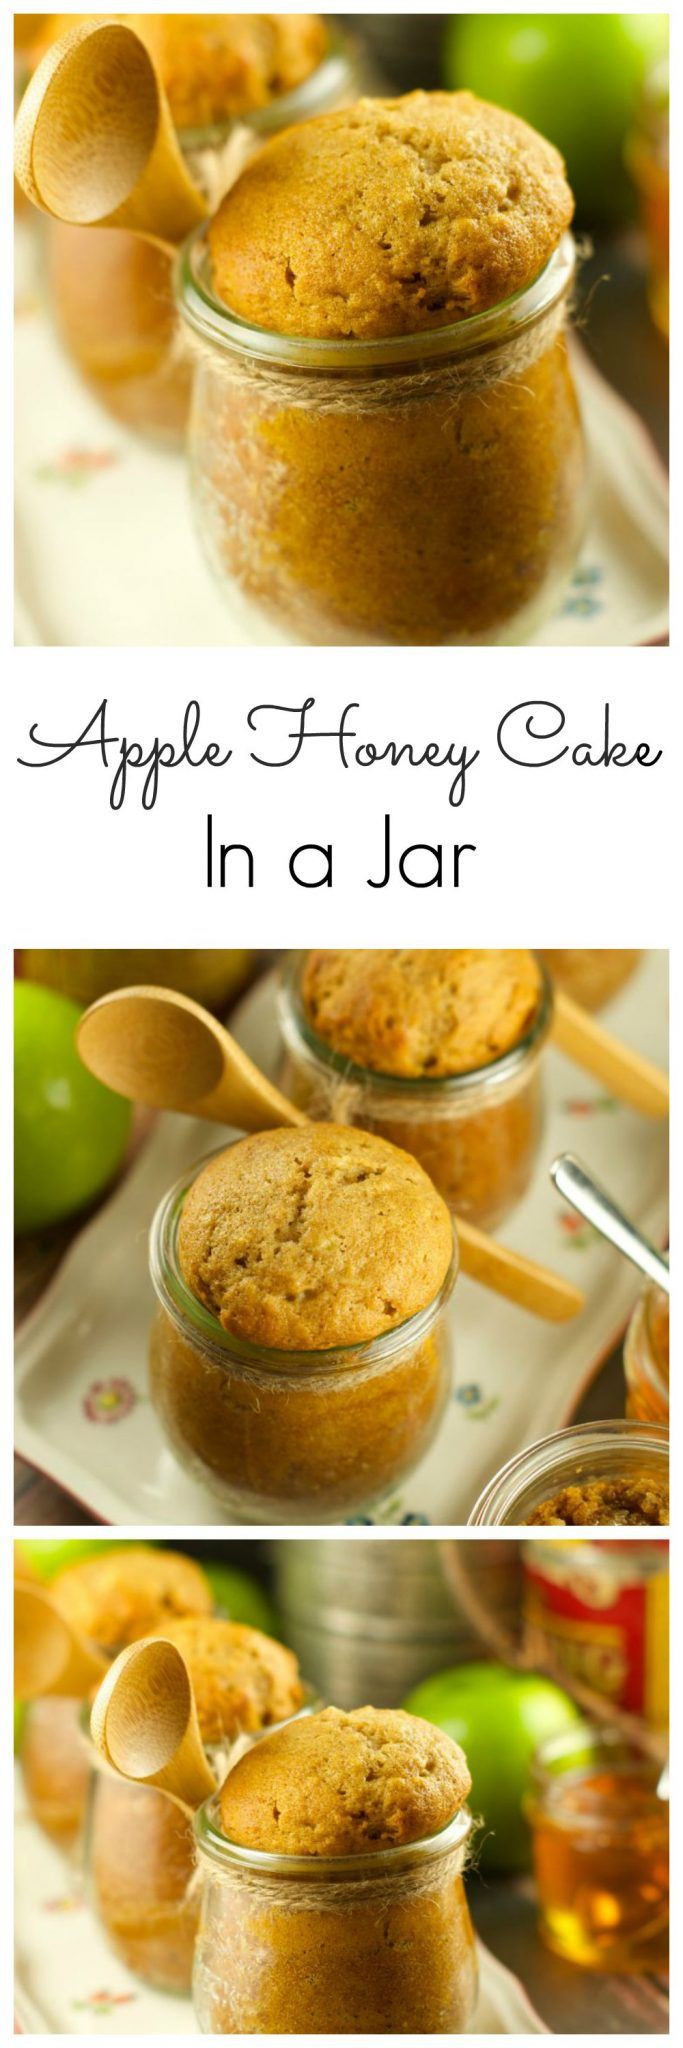 Apple Honey Cake In A Jar: celebrate the fall and Rosh Hashanah with these delicious & moist apple honey cakes in a jar. Give them out as gifts or serve them for dessert via @Livingsmoments